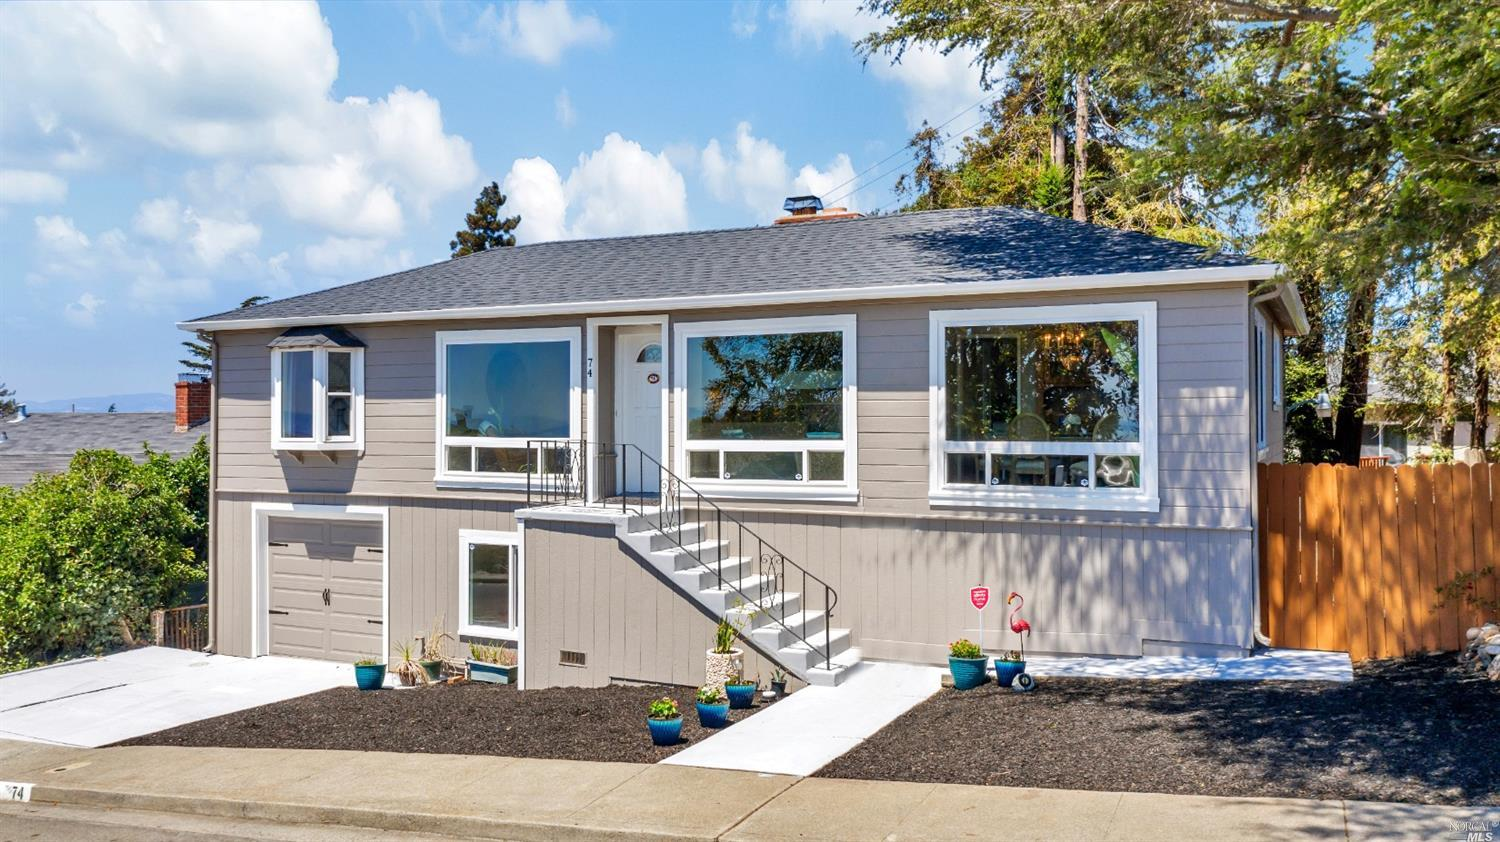 Stunning Vallejo Heights move-in ready home overlooking the Napa River & Mount Tamalpais! Golden Gat